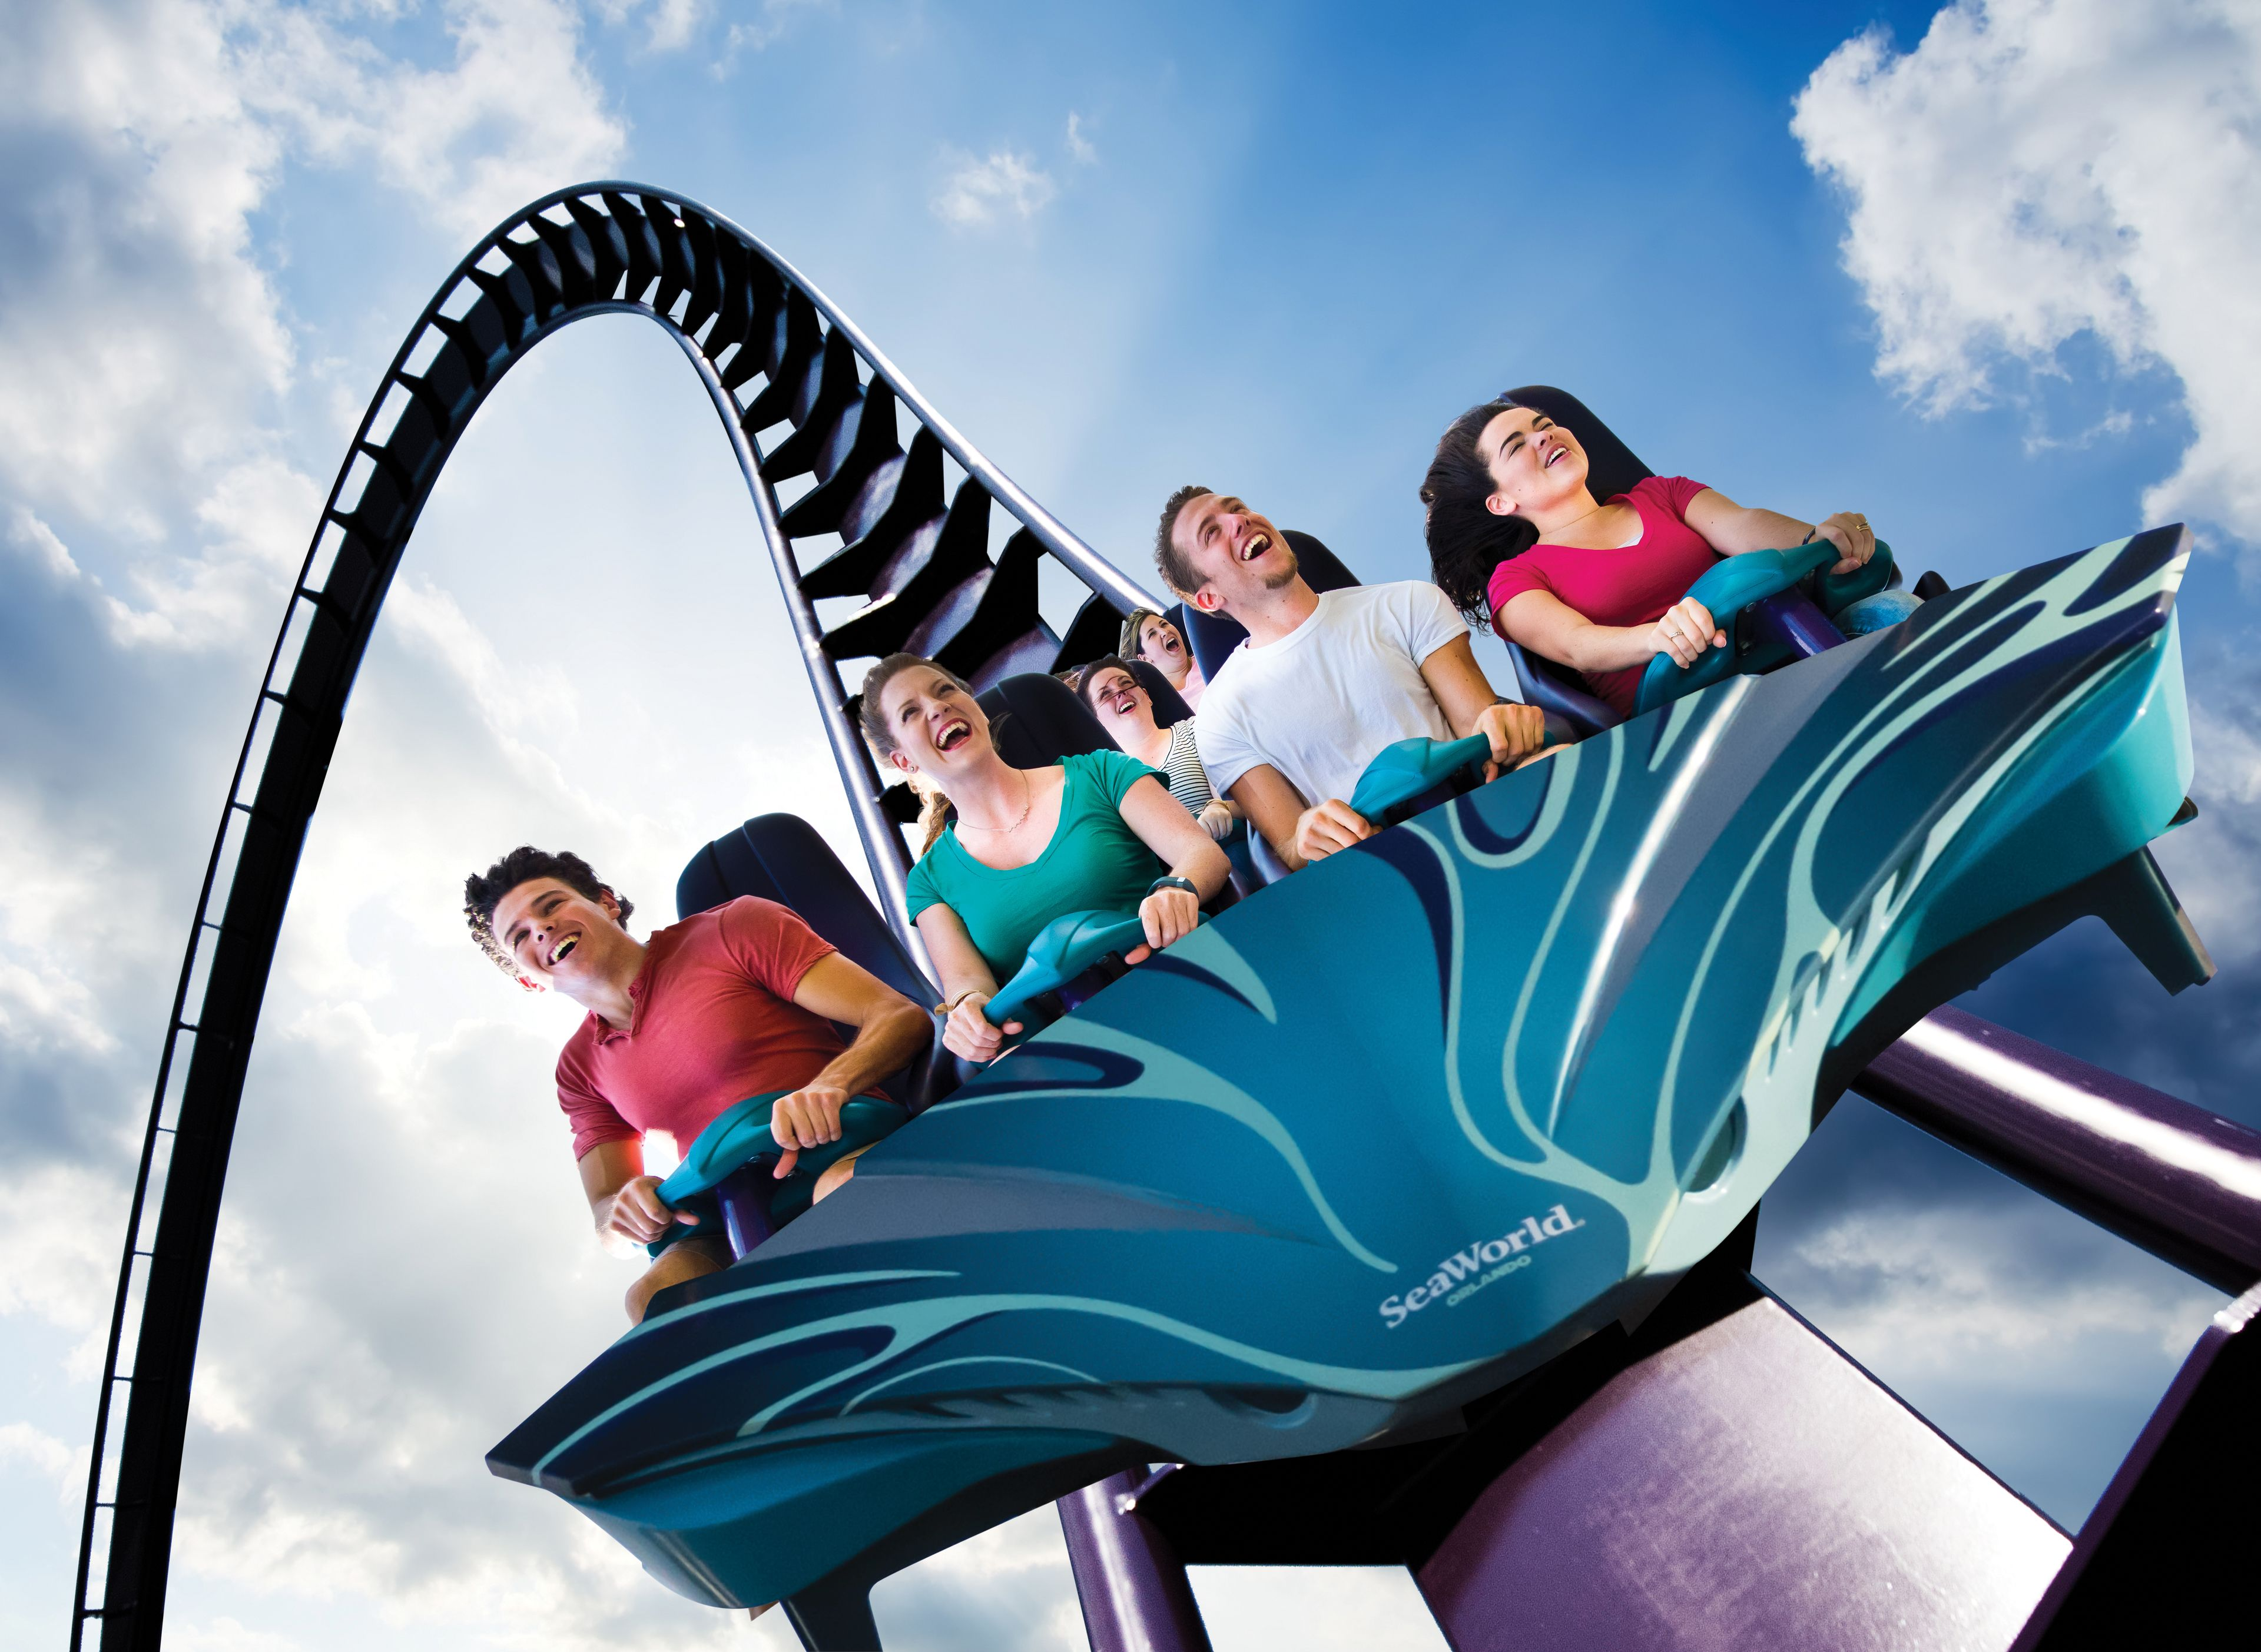 Group of People ride a roller coaster at Aquatica